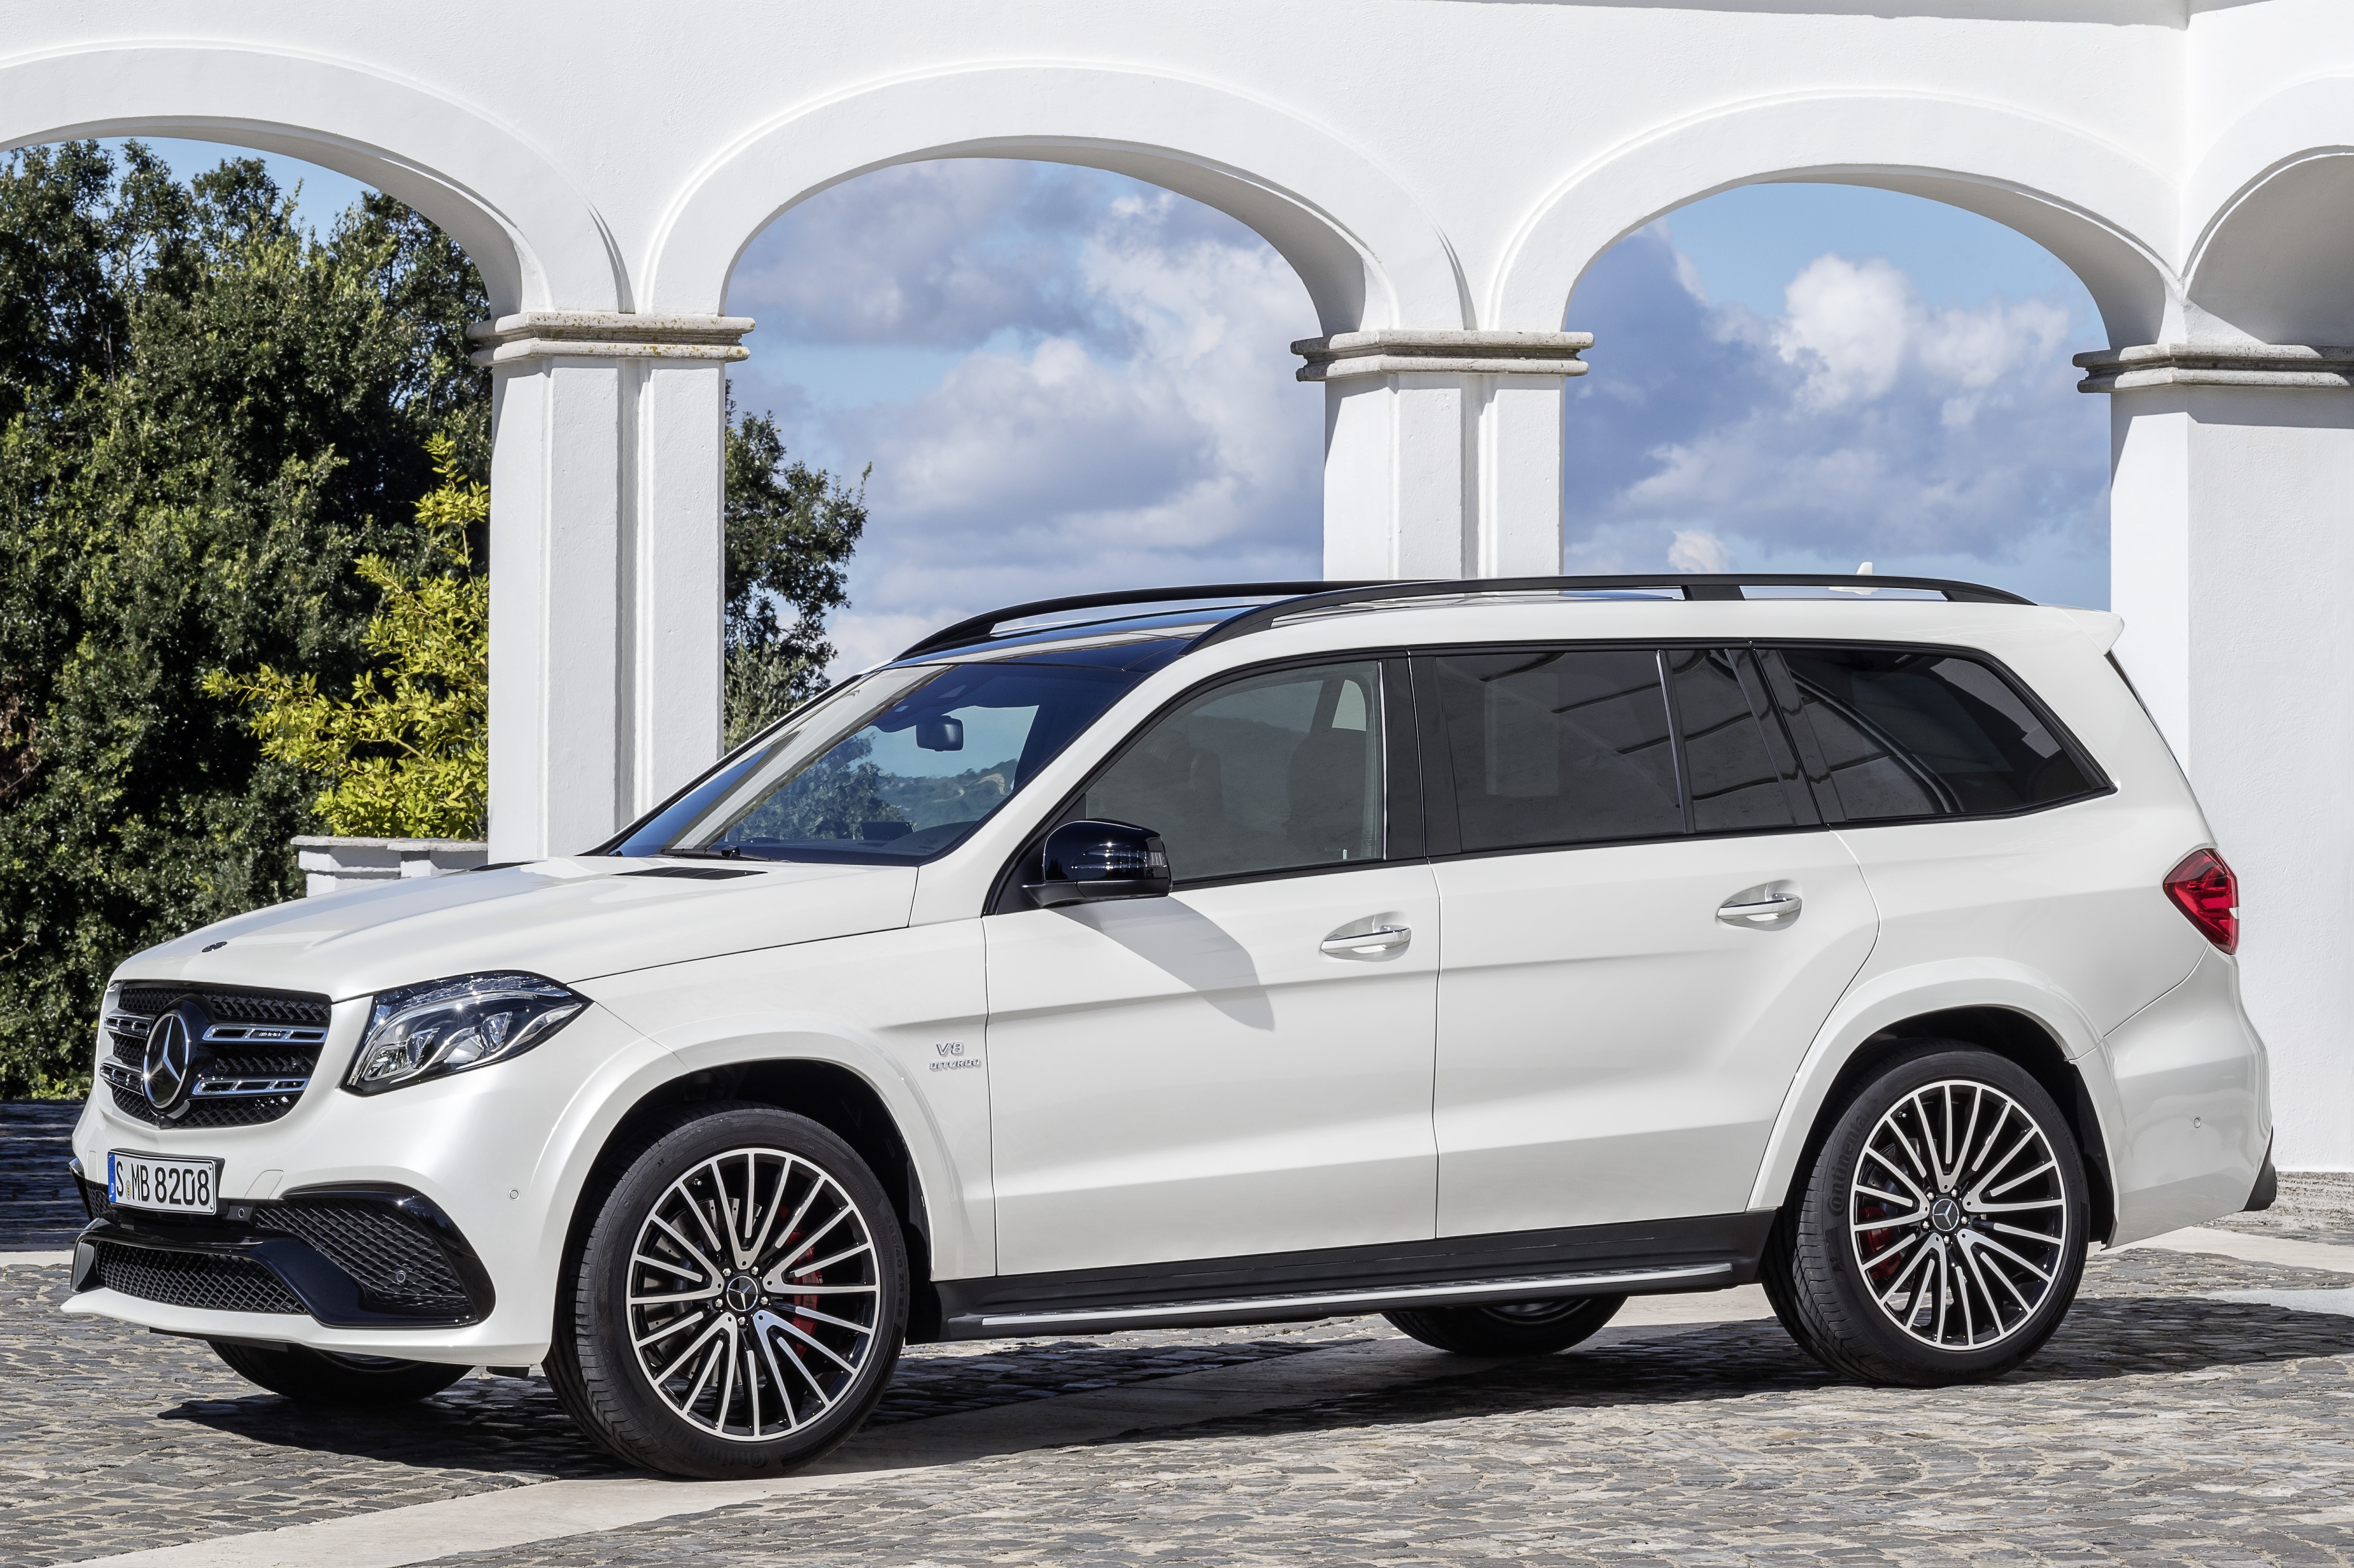 Mercedes benz gls x 166 fl 2015 for Florida mercedes benz